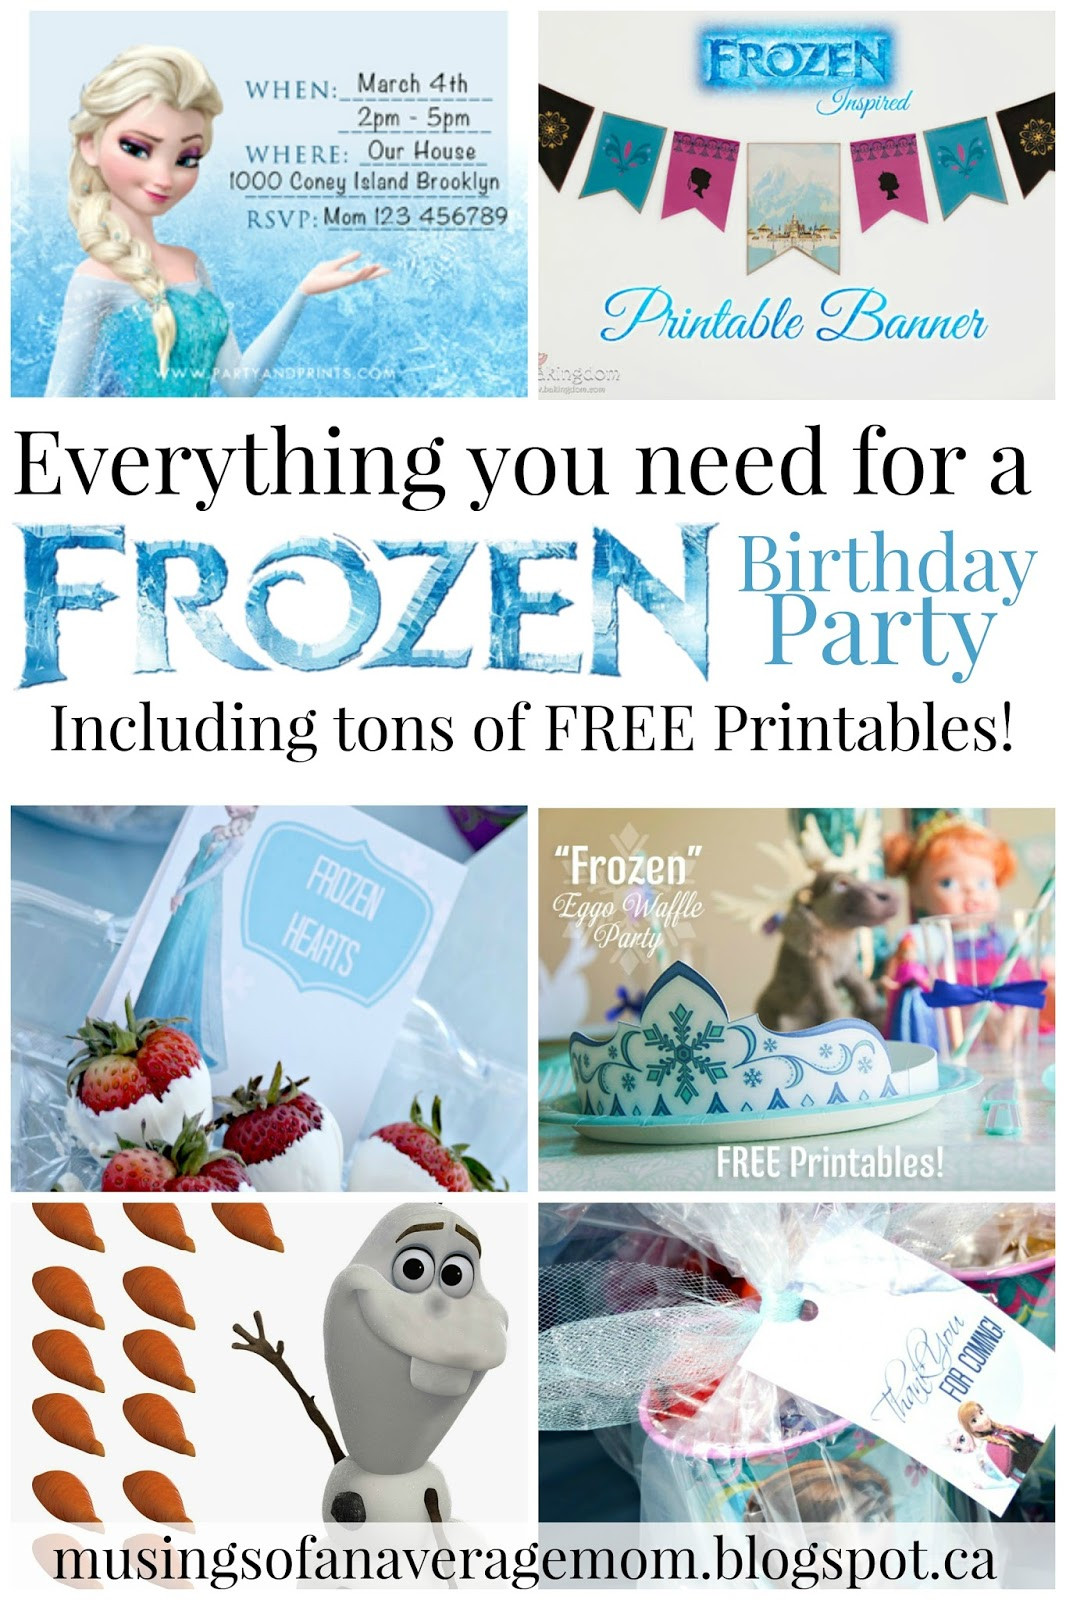 Frozen Invite Printable Musings Of An Average Mom Free Frozen Party Printables